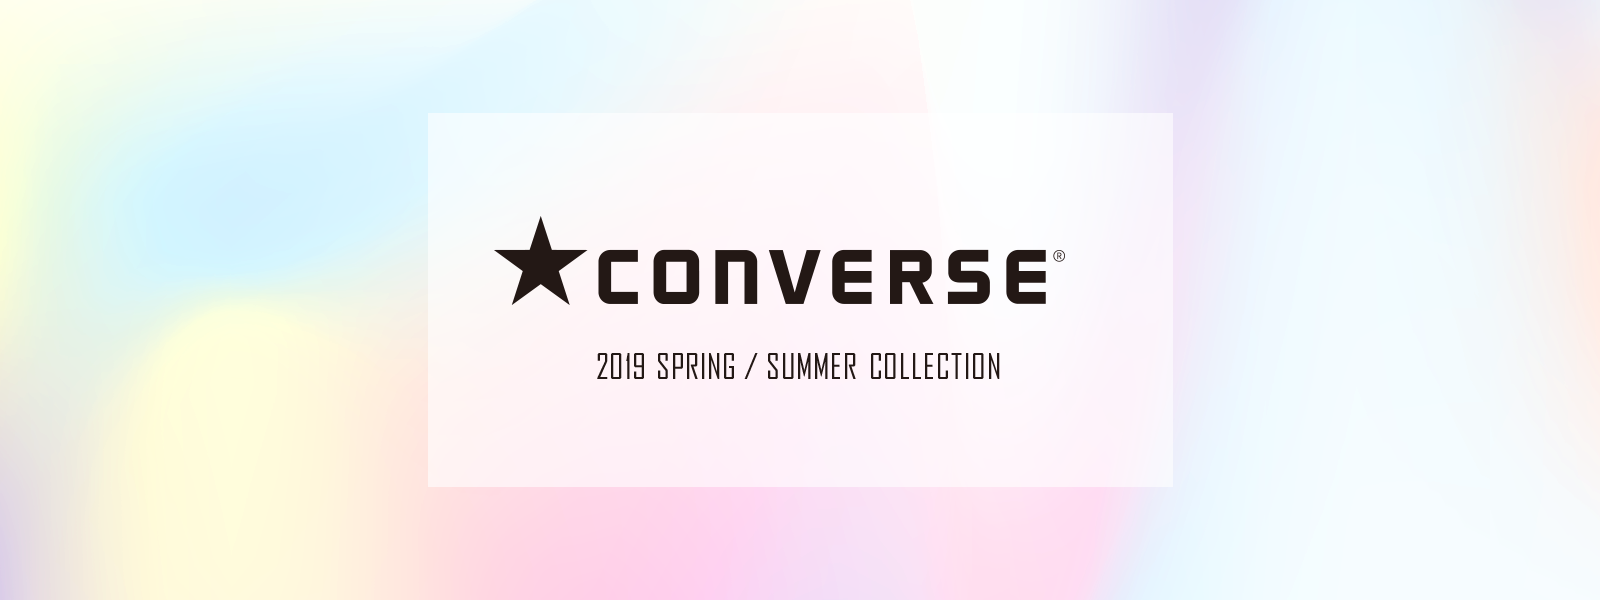 CONVERSE 2019 Spring / Summer Collection